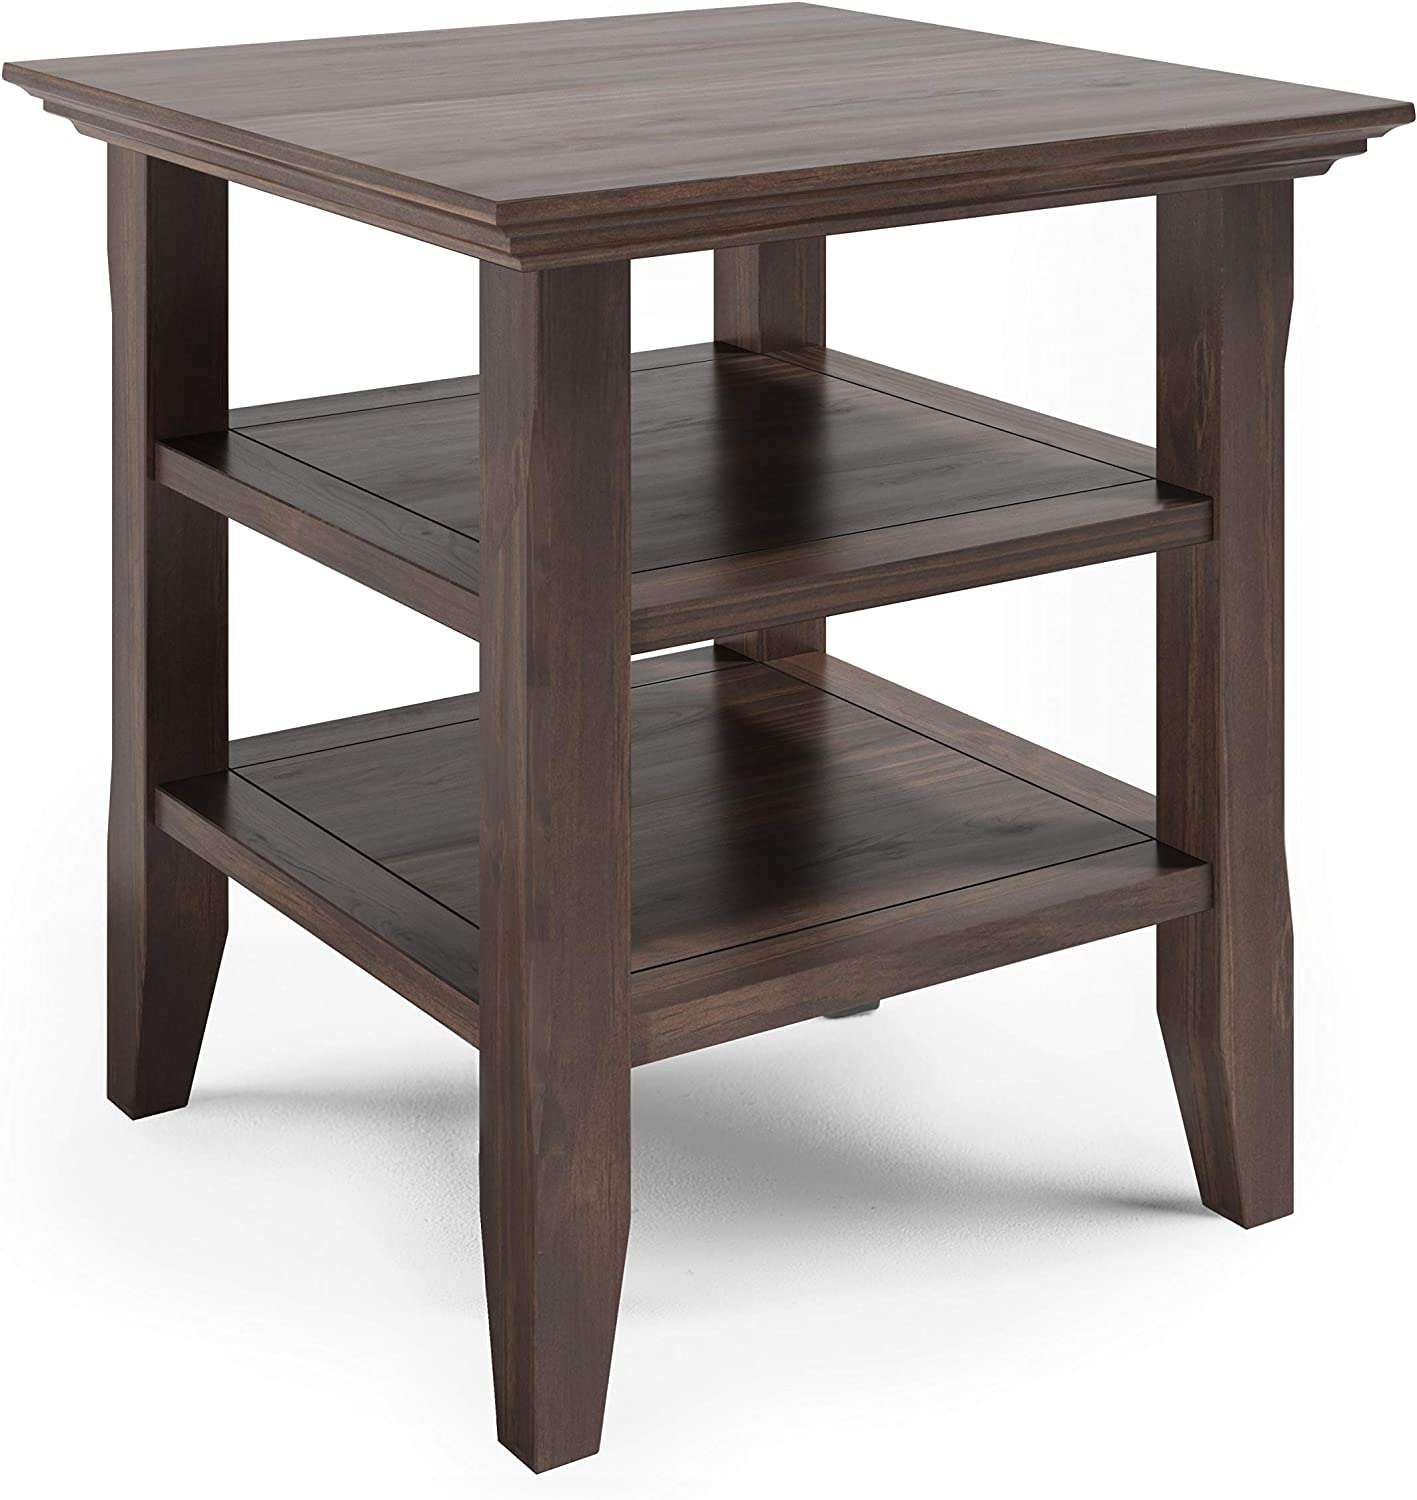 SIMPLIHOME Acadian SOLID WOOD 19 inch Wide Square Rustic End Table in Warm Walnut Brown